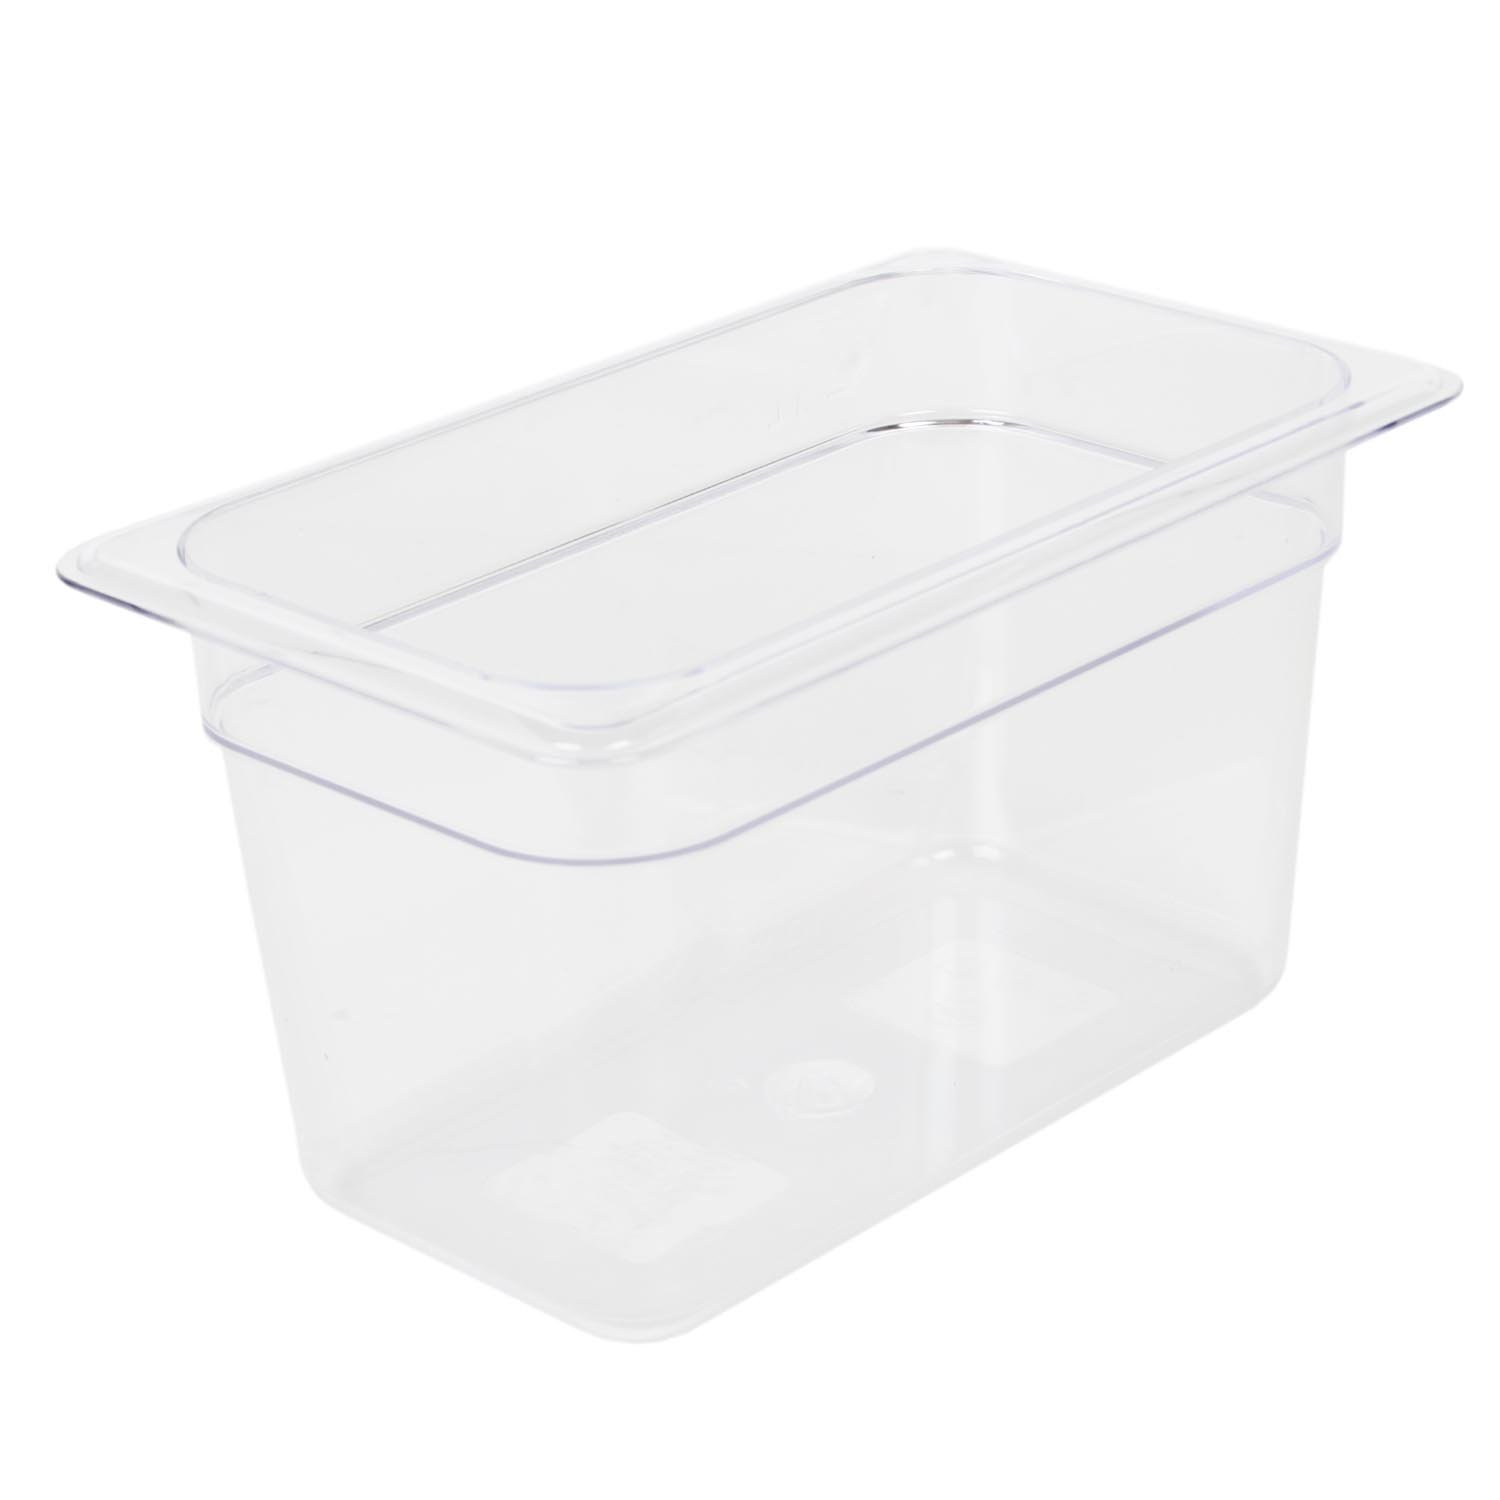 Excellante 849851007208 Deep Polycarbonate Food Pan, 6